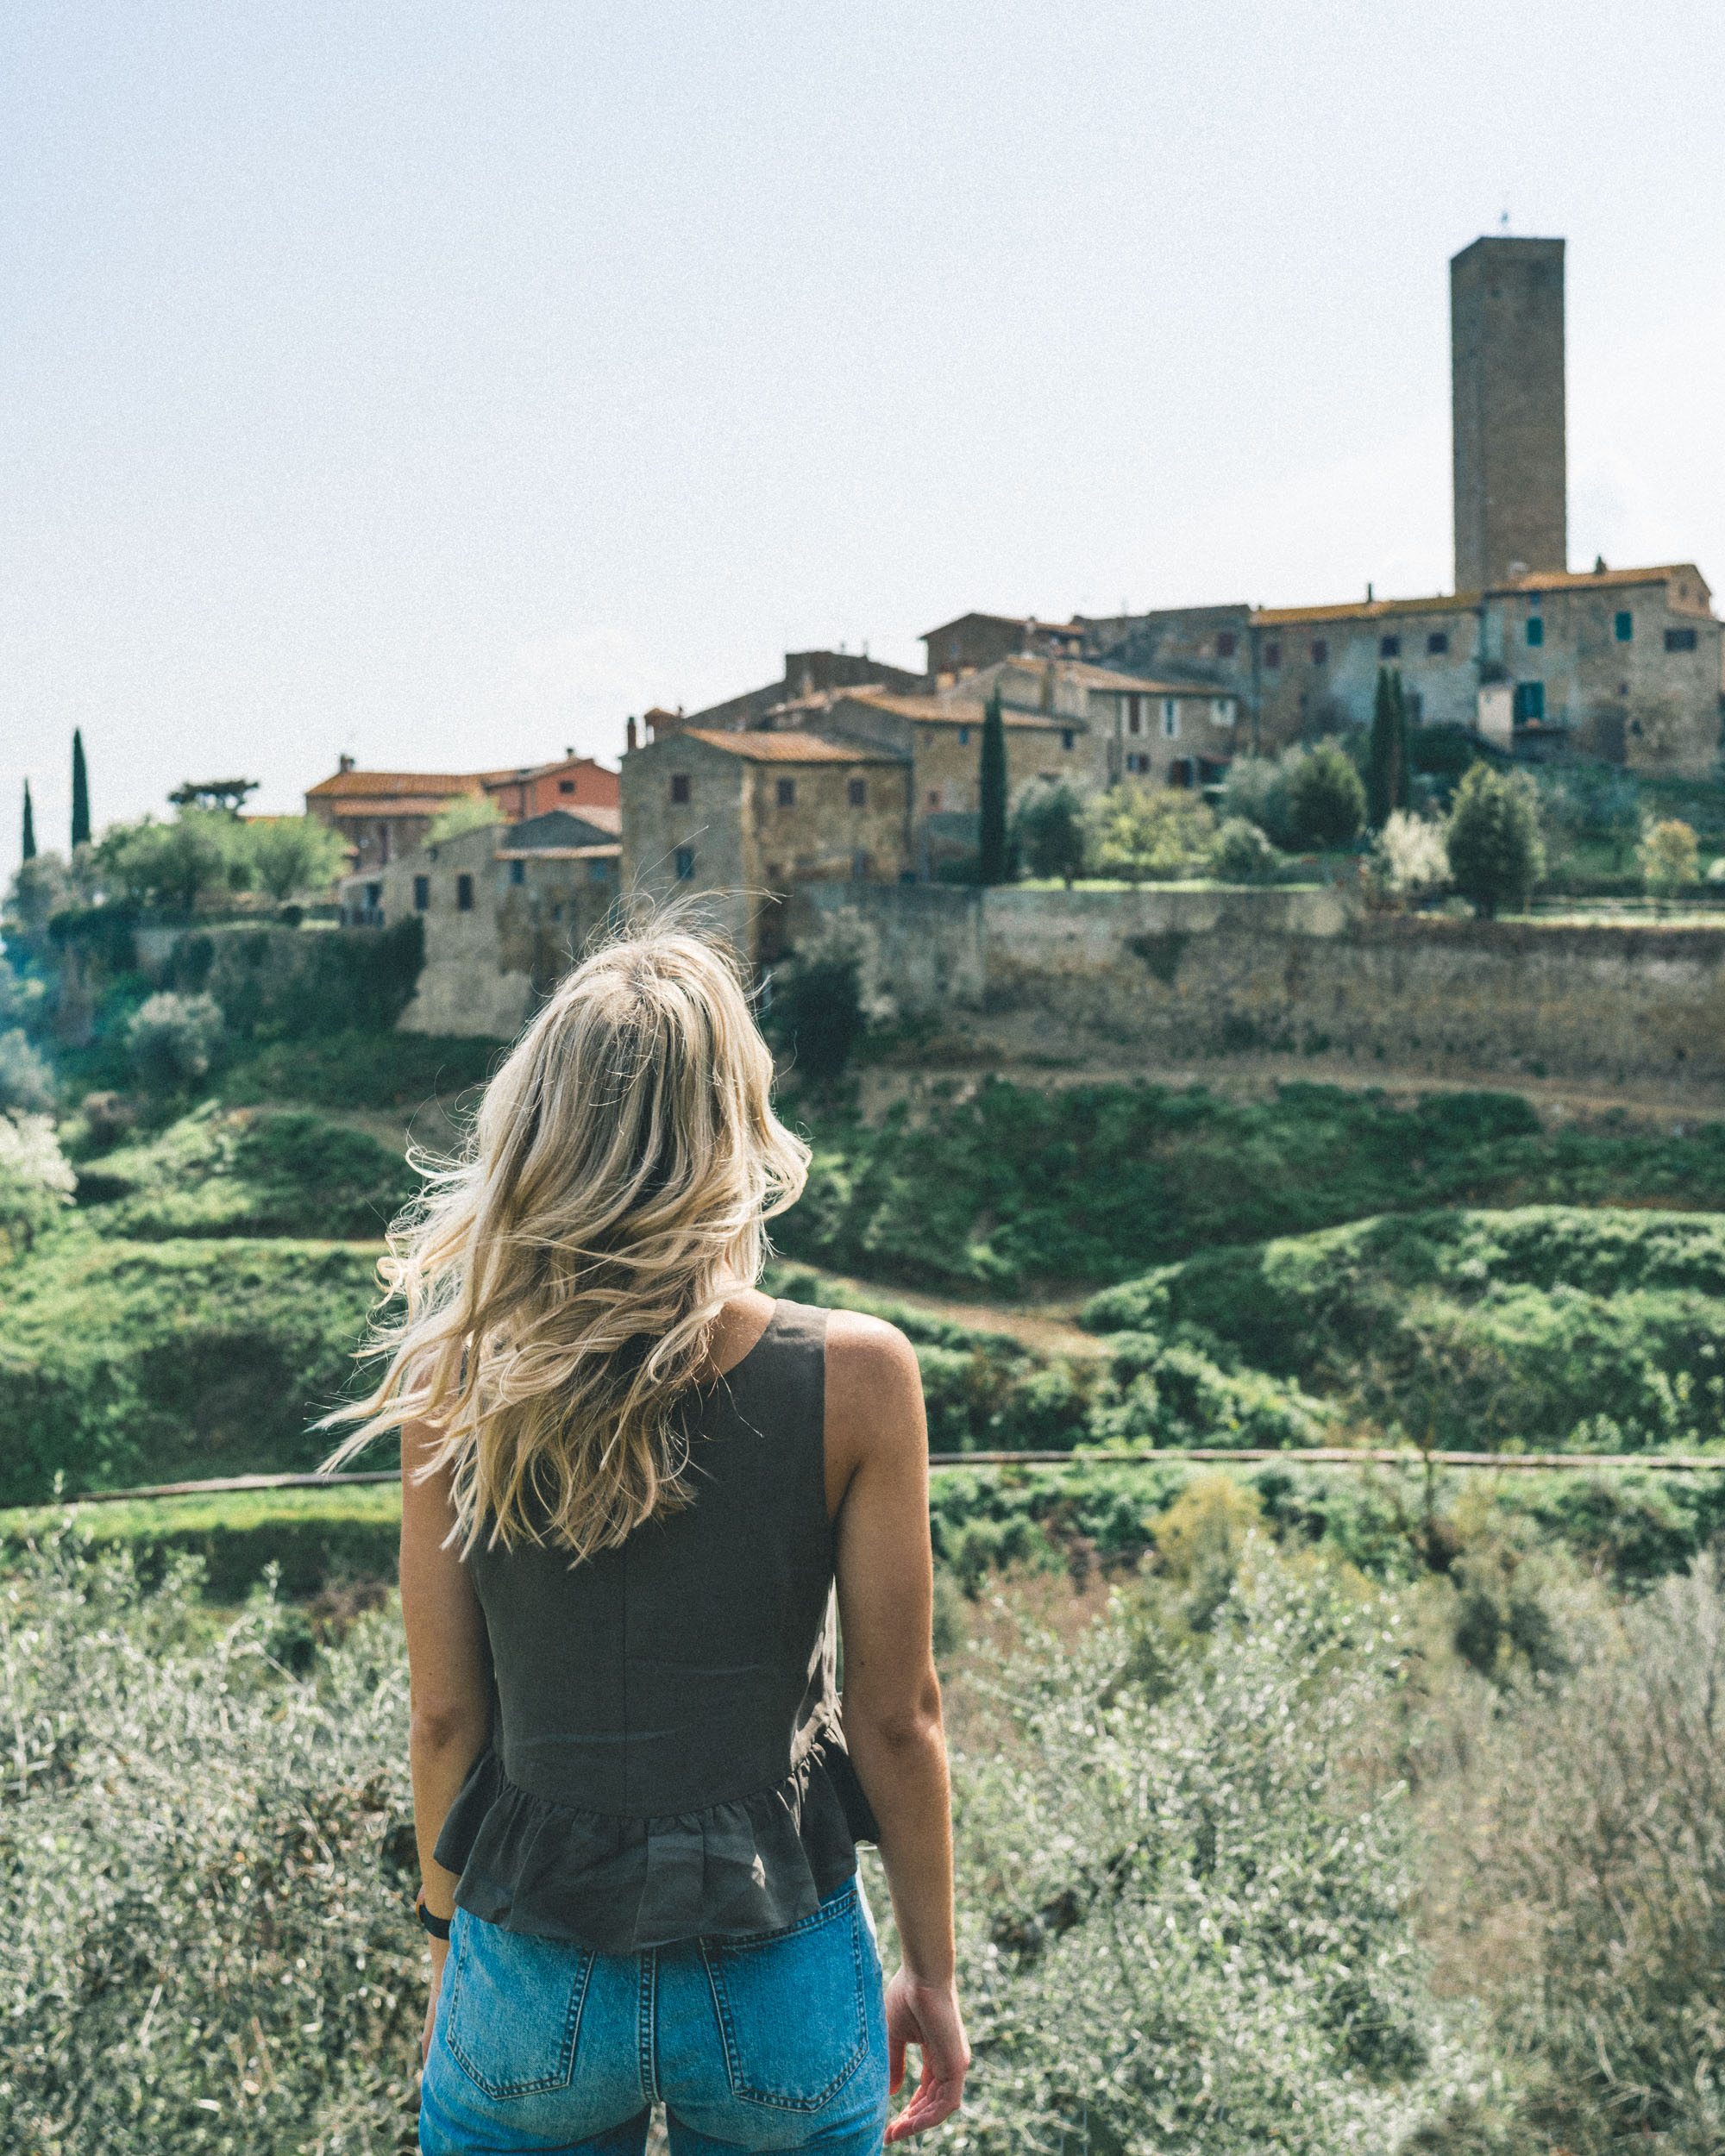 The small towns and wine-tasting regions of Southern Tuscany